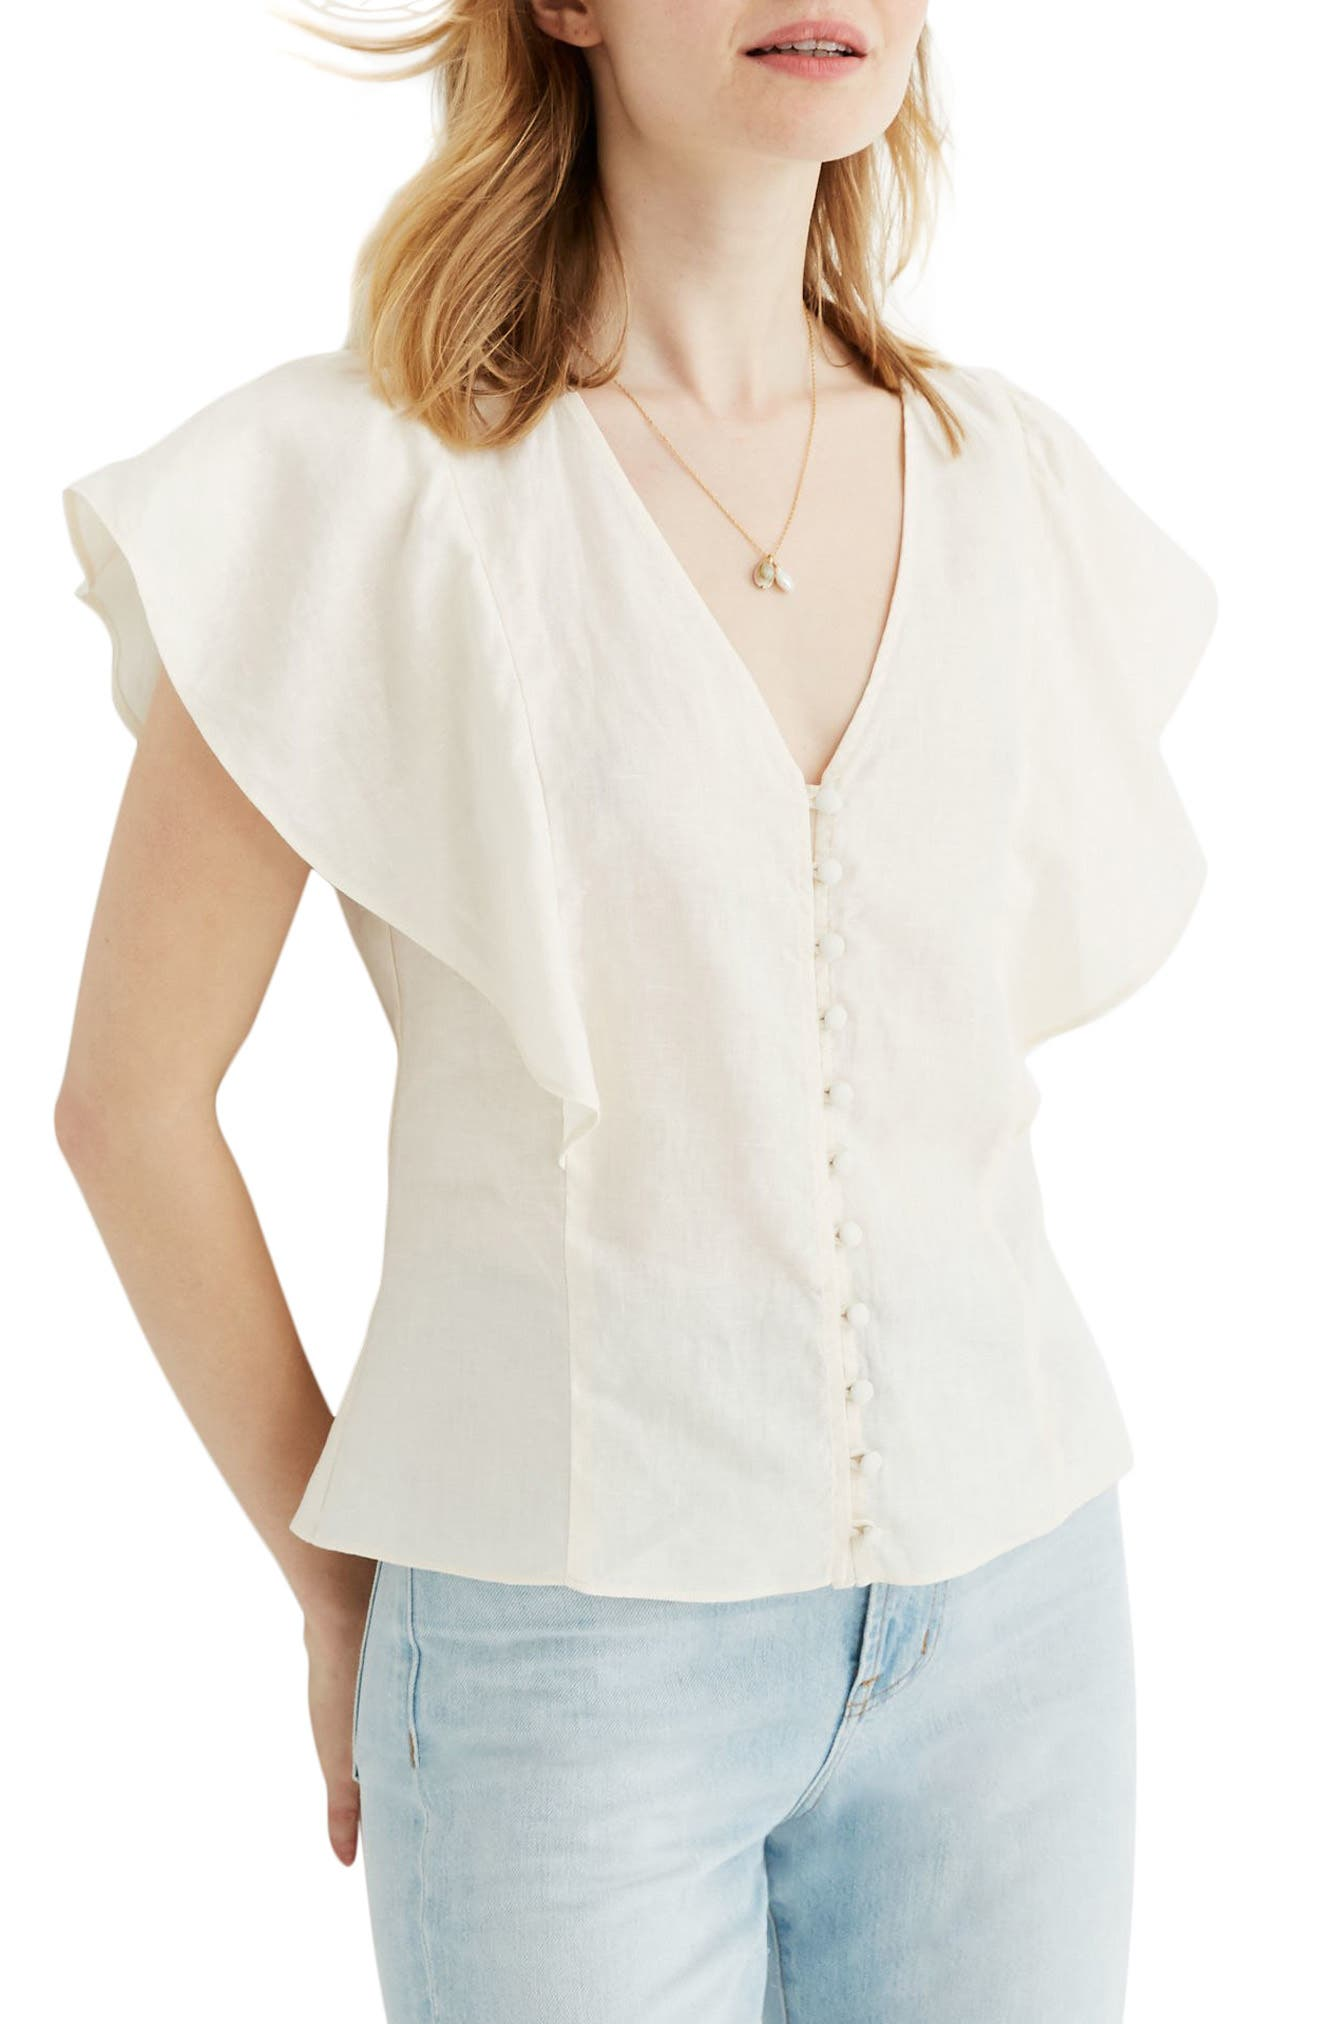 1930s Style Blouses, Shirts, Tops | Vintage Blouses Womens Madewell Carmelina Flutter Sleeve Linen Top $78.00 AT vintagedancer.com